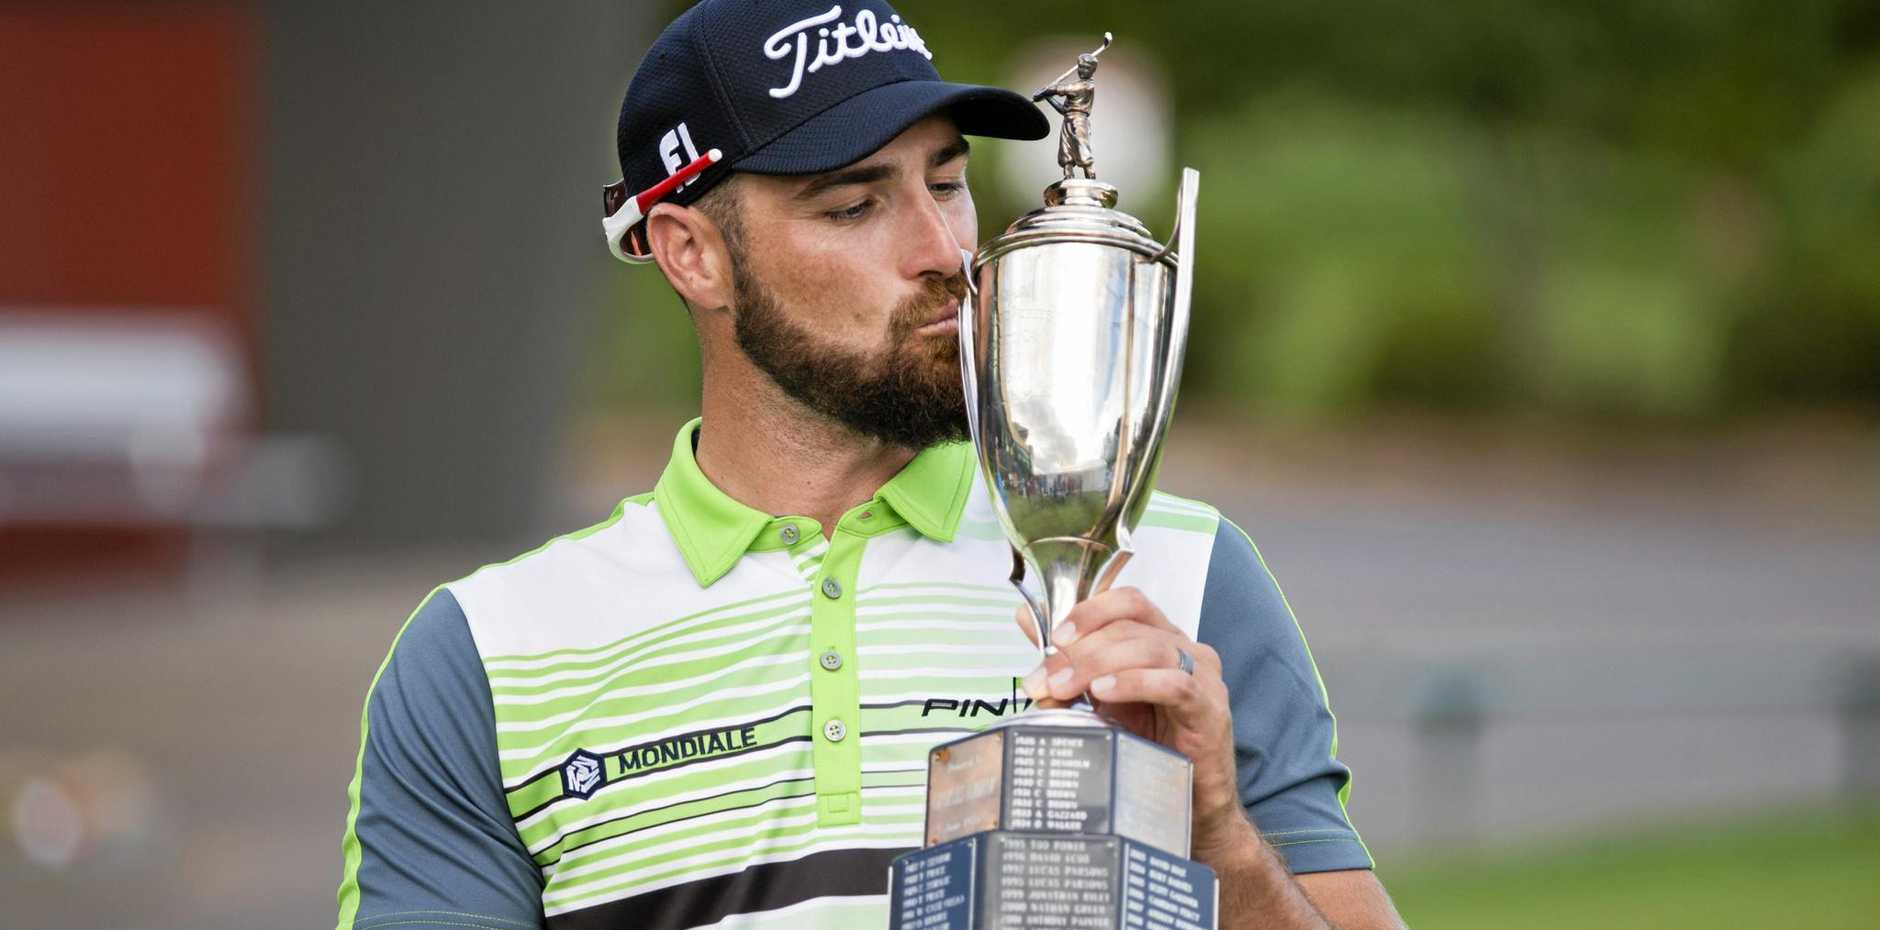 Daniel Pearce celebrates his victory today in the Coca-Cola Queensland PGA Championship final round at City Golf club.